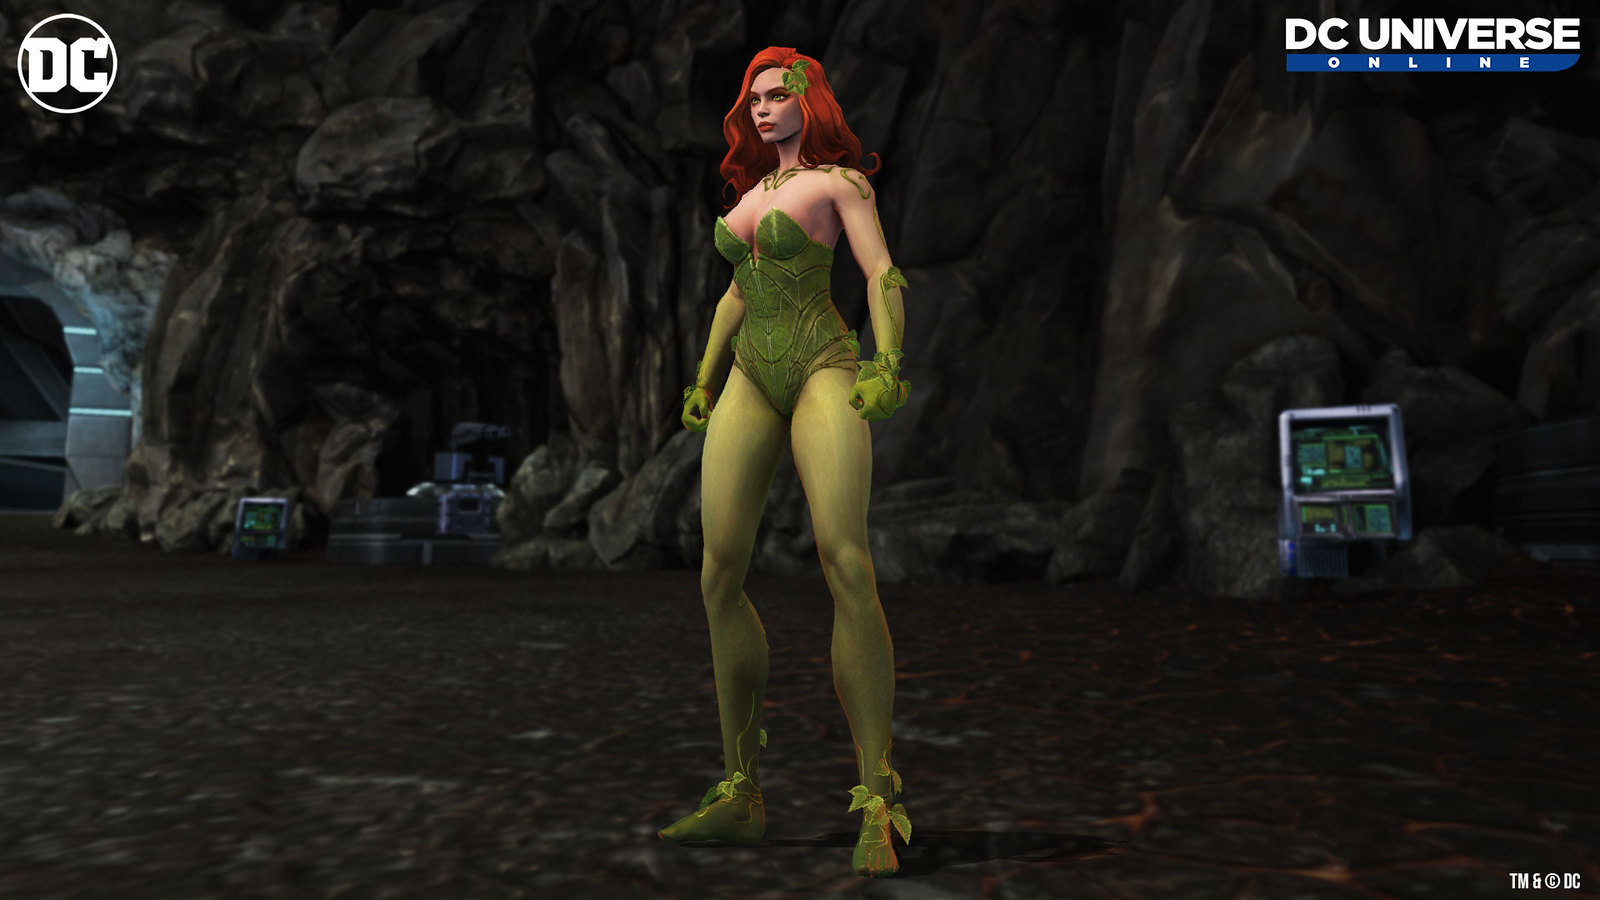 DC Universe Online: Birds of Prey - Poison Ivy